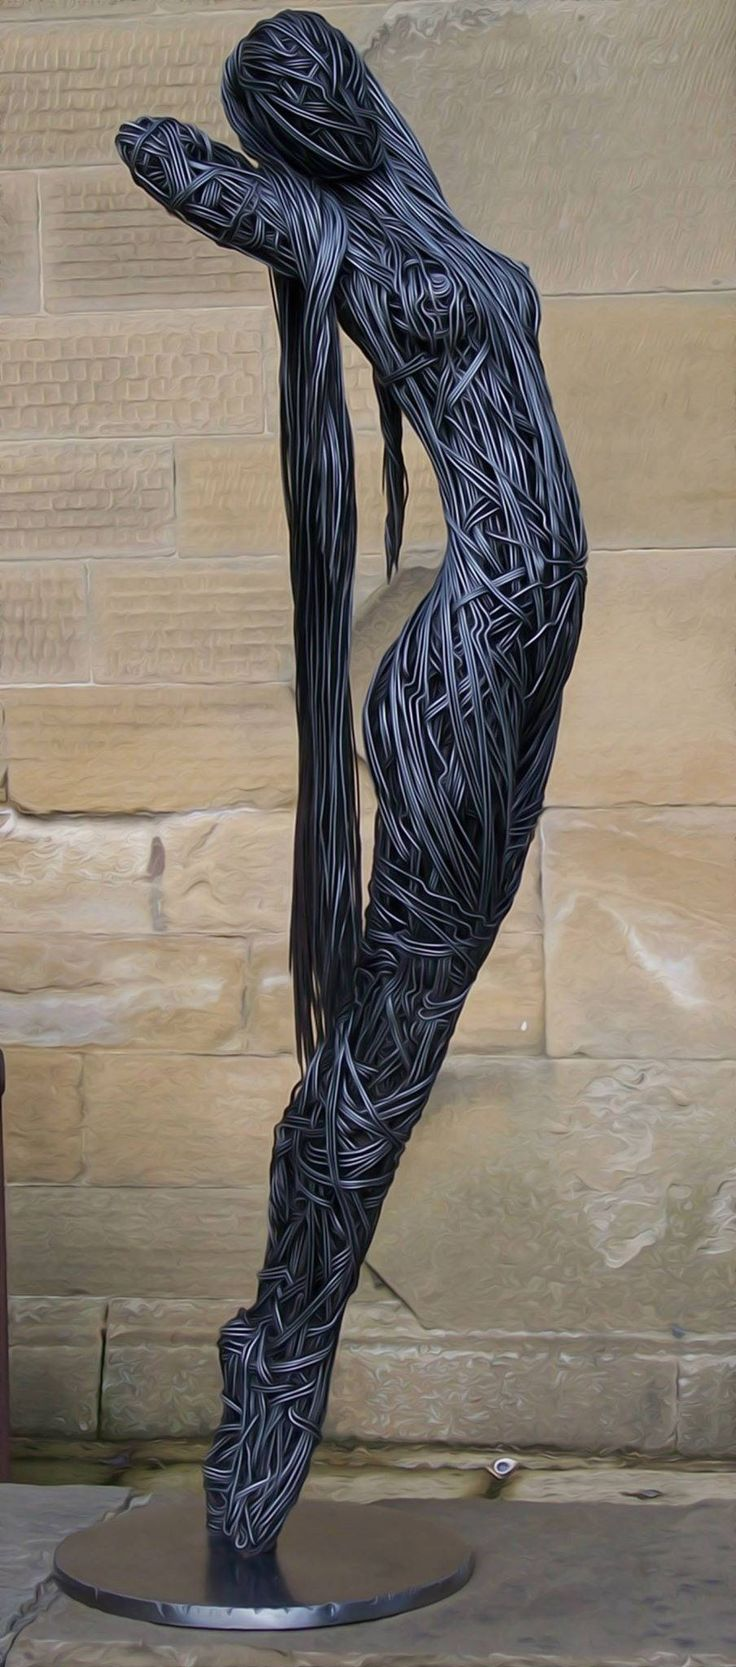 External - Artist Richard Stainthorp Creates Incredible Wire Sculptures Of The Human Body.  This just seems to flow.